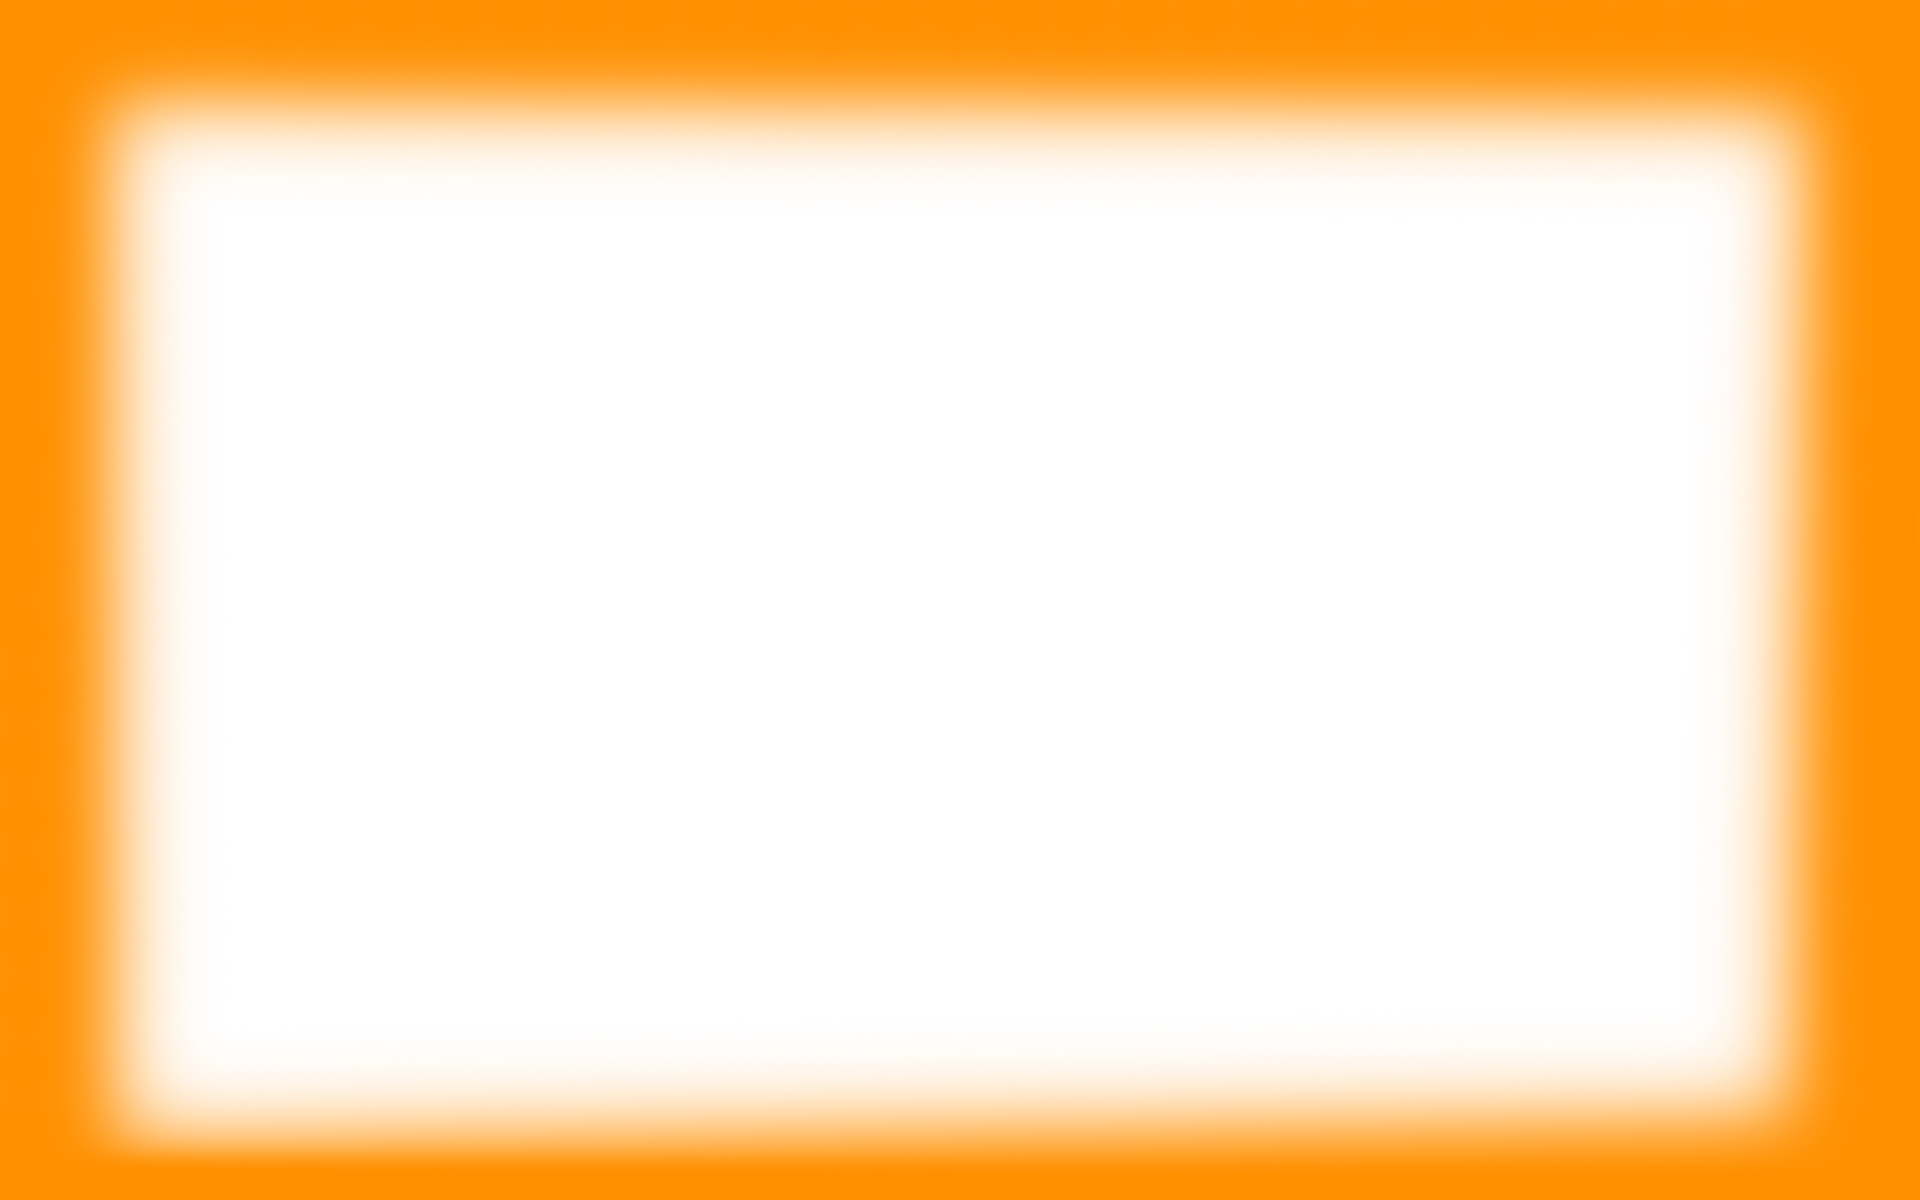 Orange Border